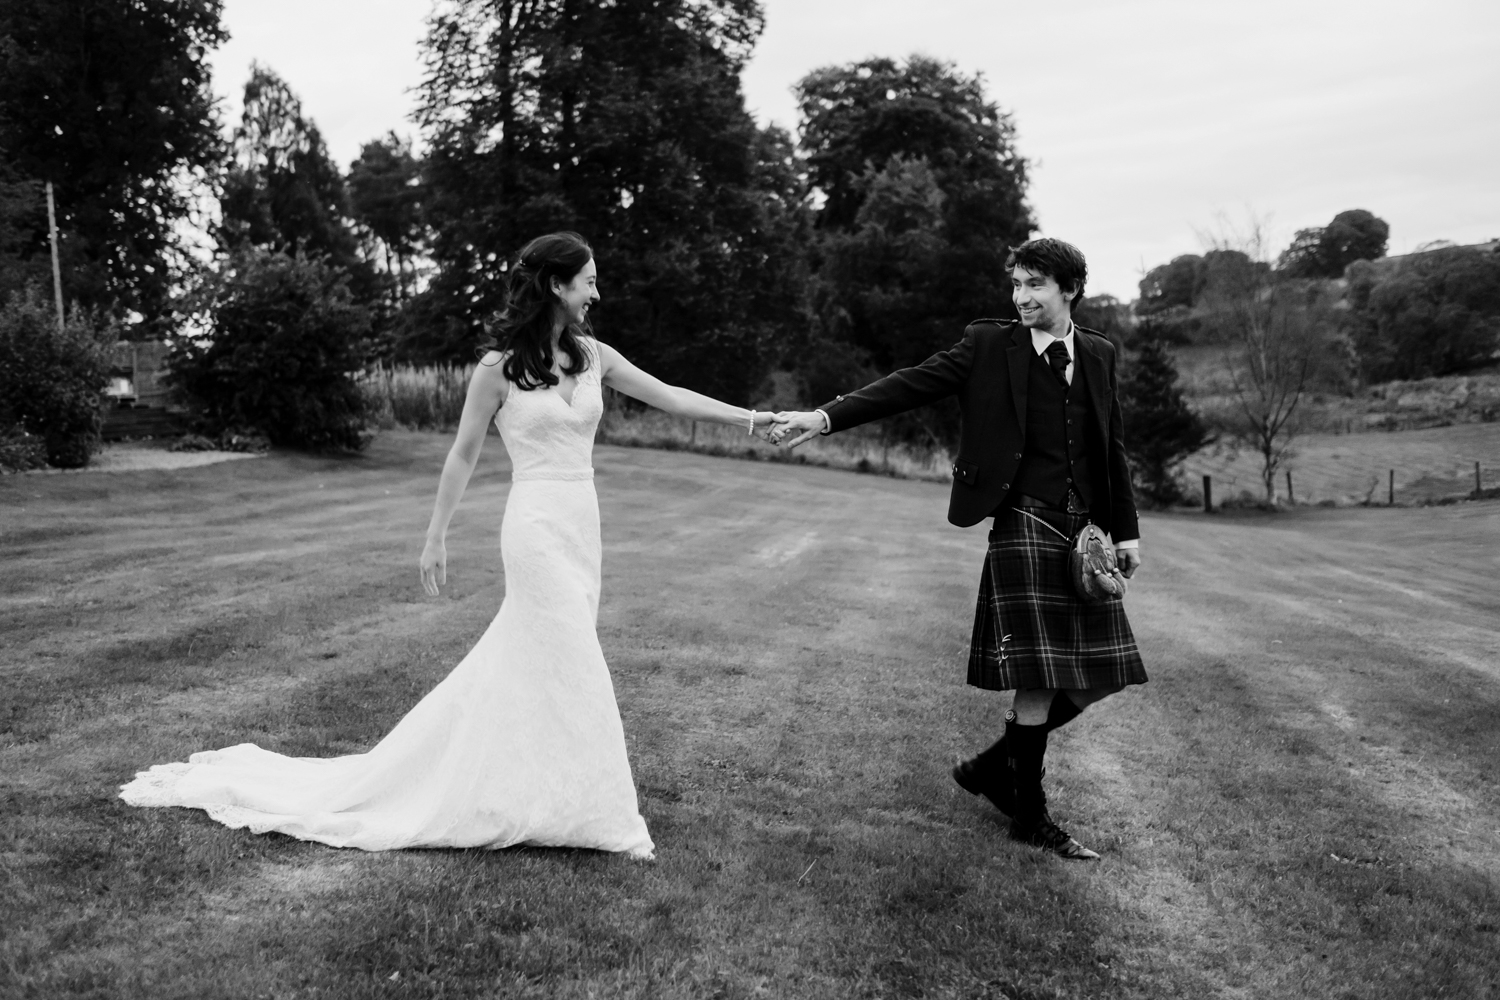 Bride and groom holding hands as they walk apart from each other.